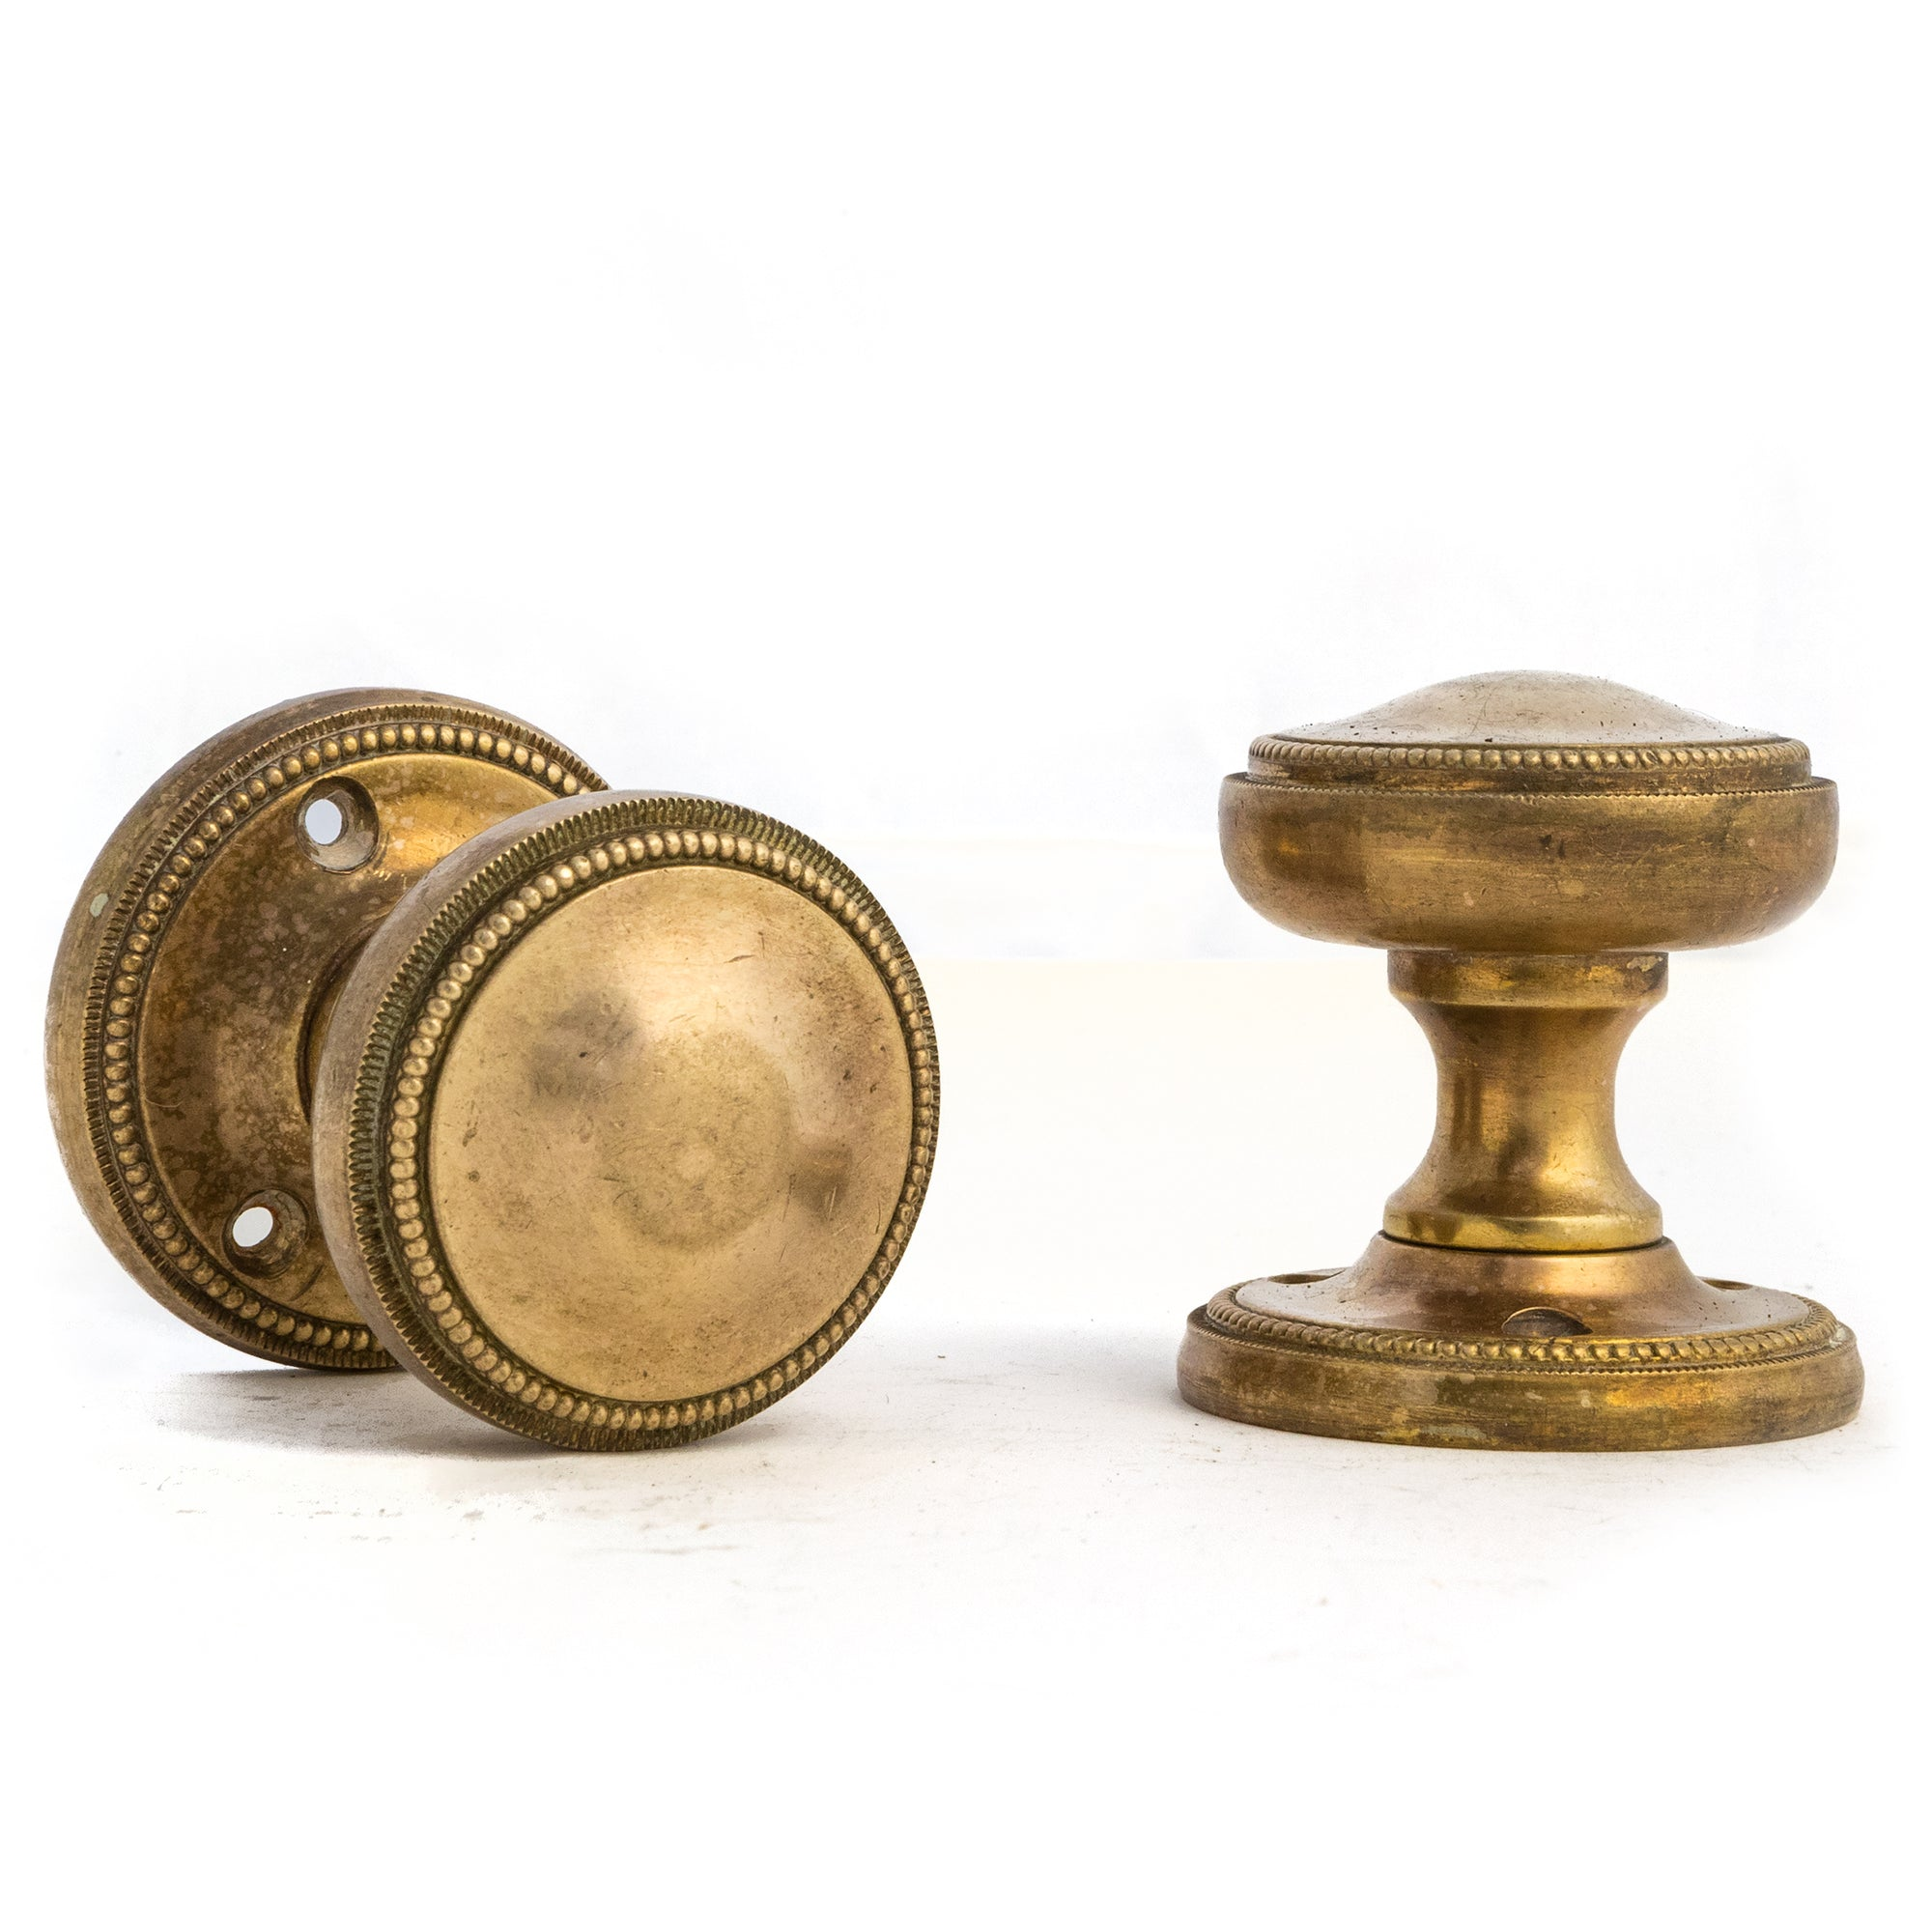 Pair of Antique Solid Brass Door Knobs